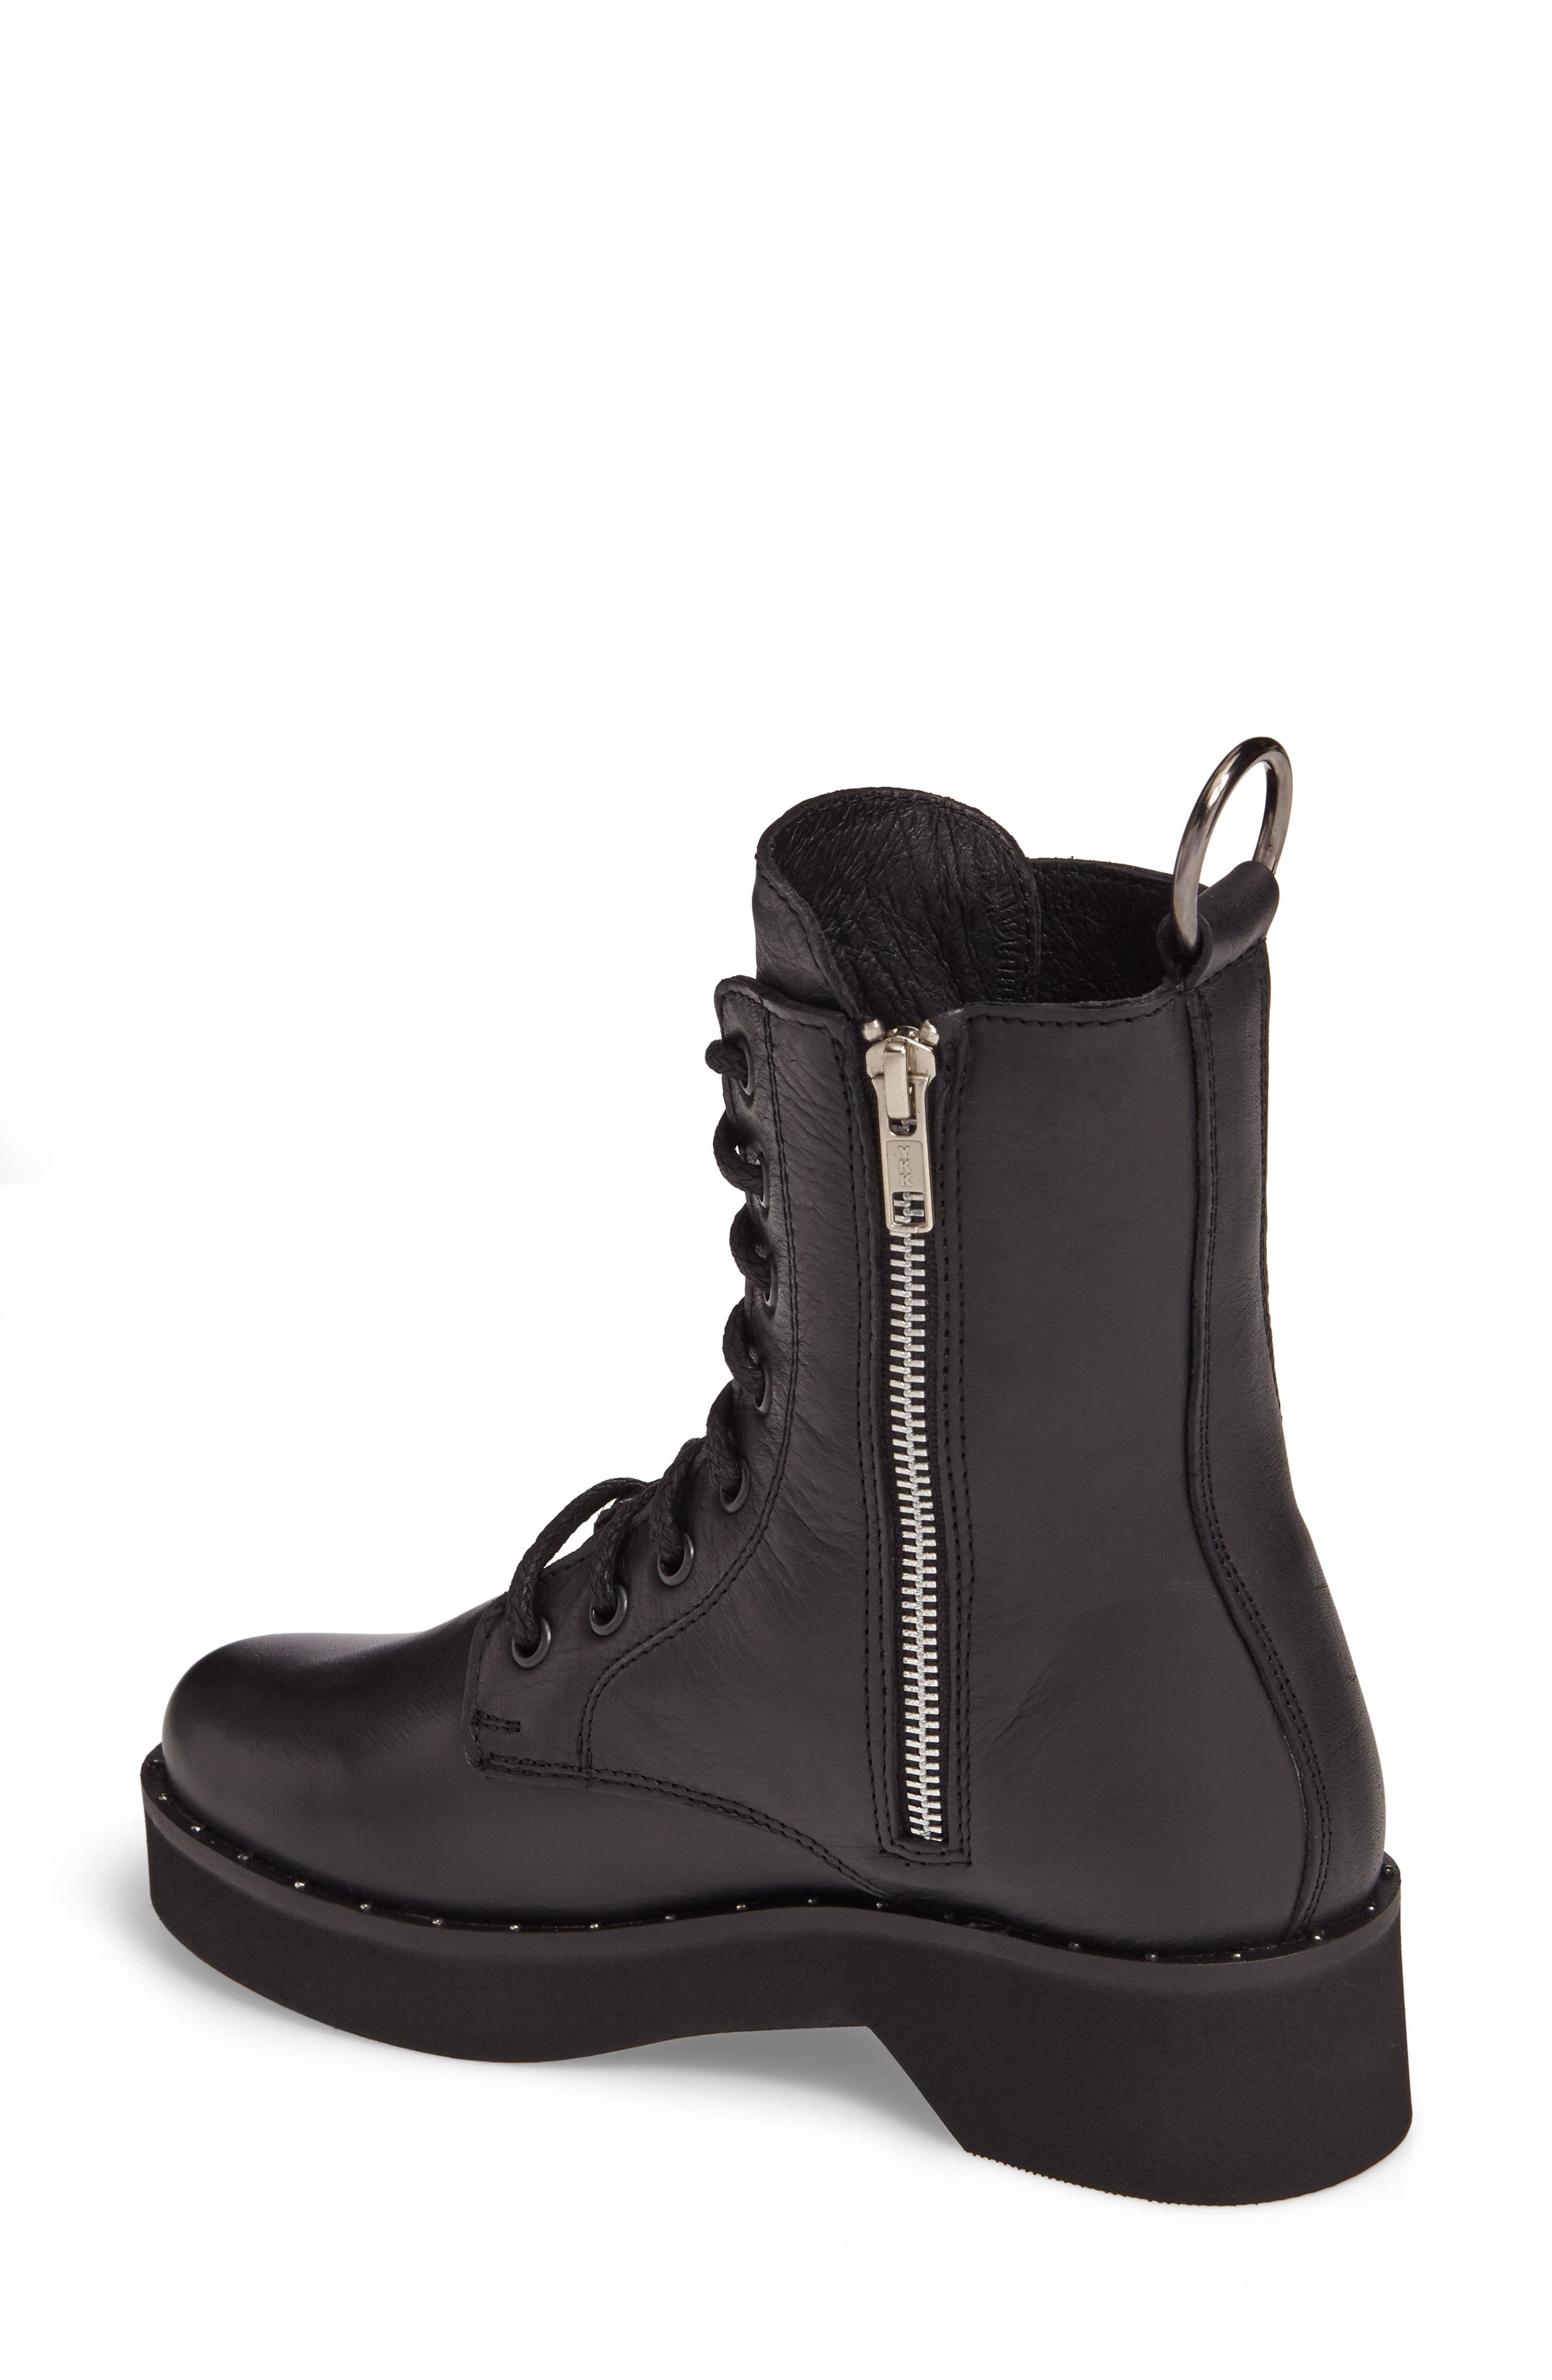 Rocco Combat Boot,                             Alternate thumbnail 2, color,                             001